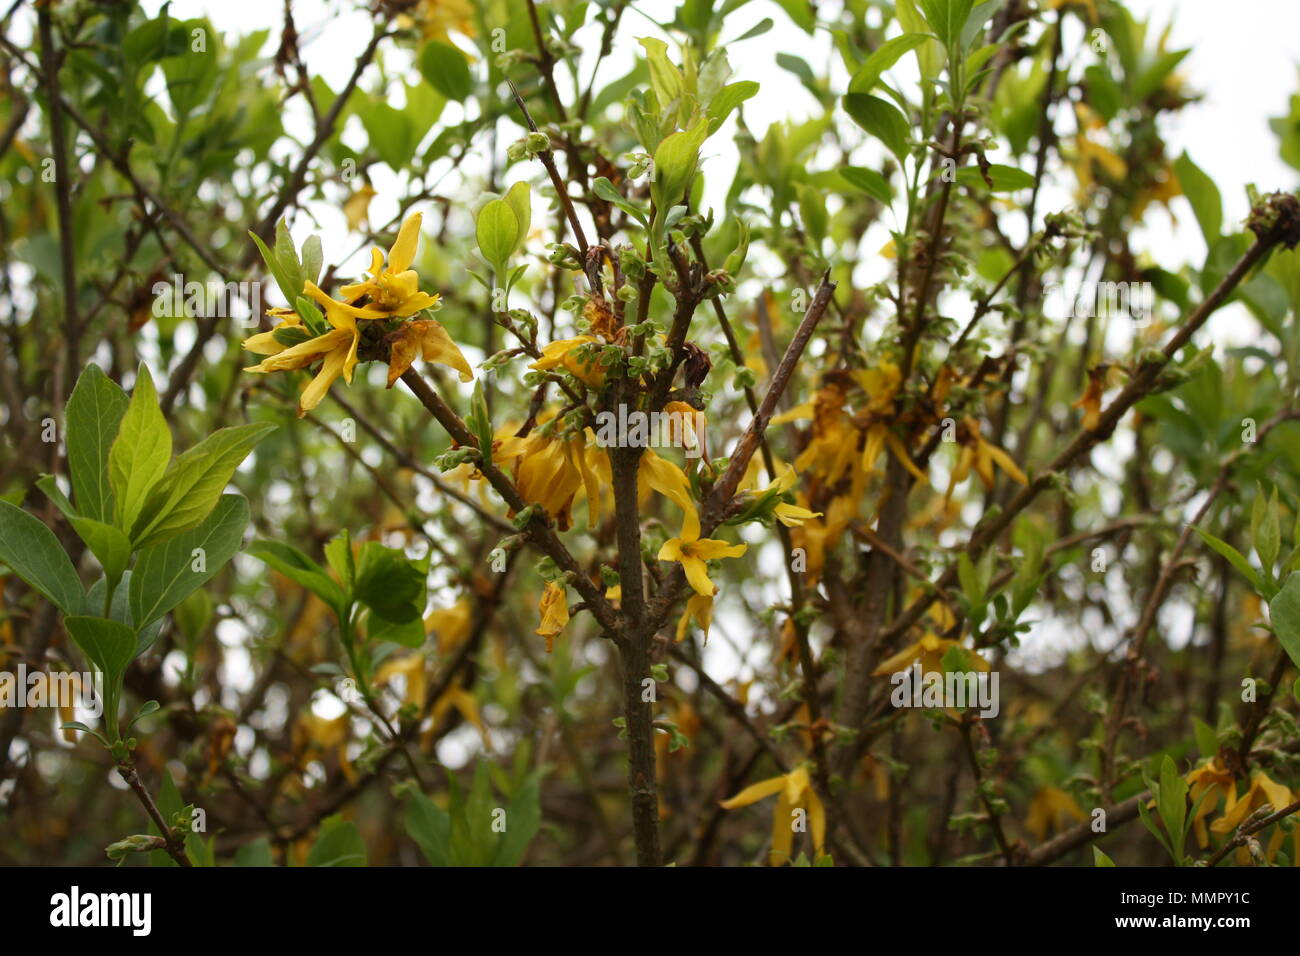 Small yellow flowers which adorn the bushes begin to wilt in the heat wave. - Stock Image